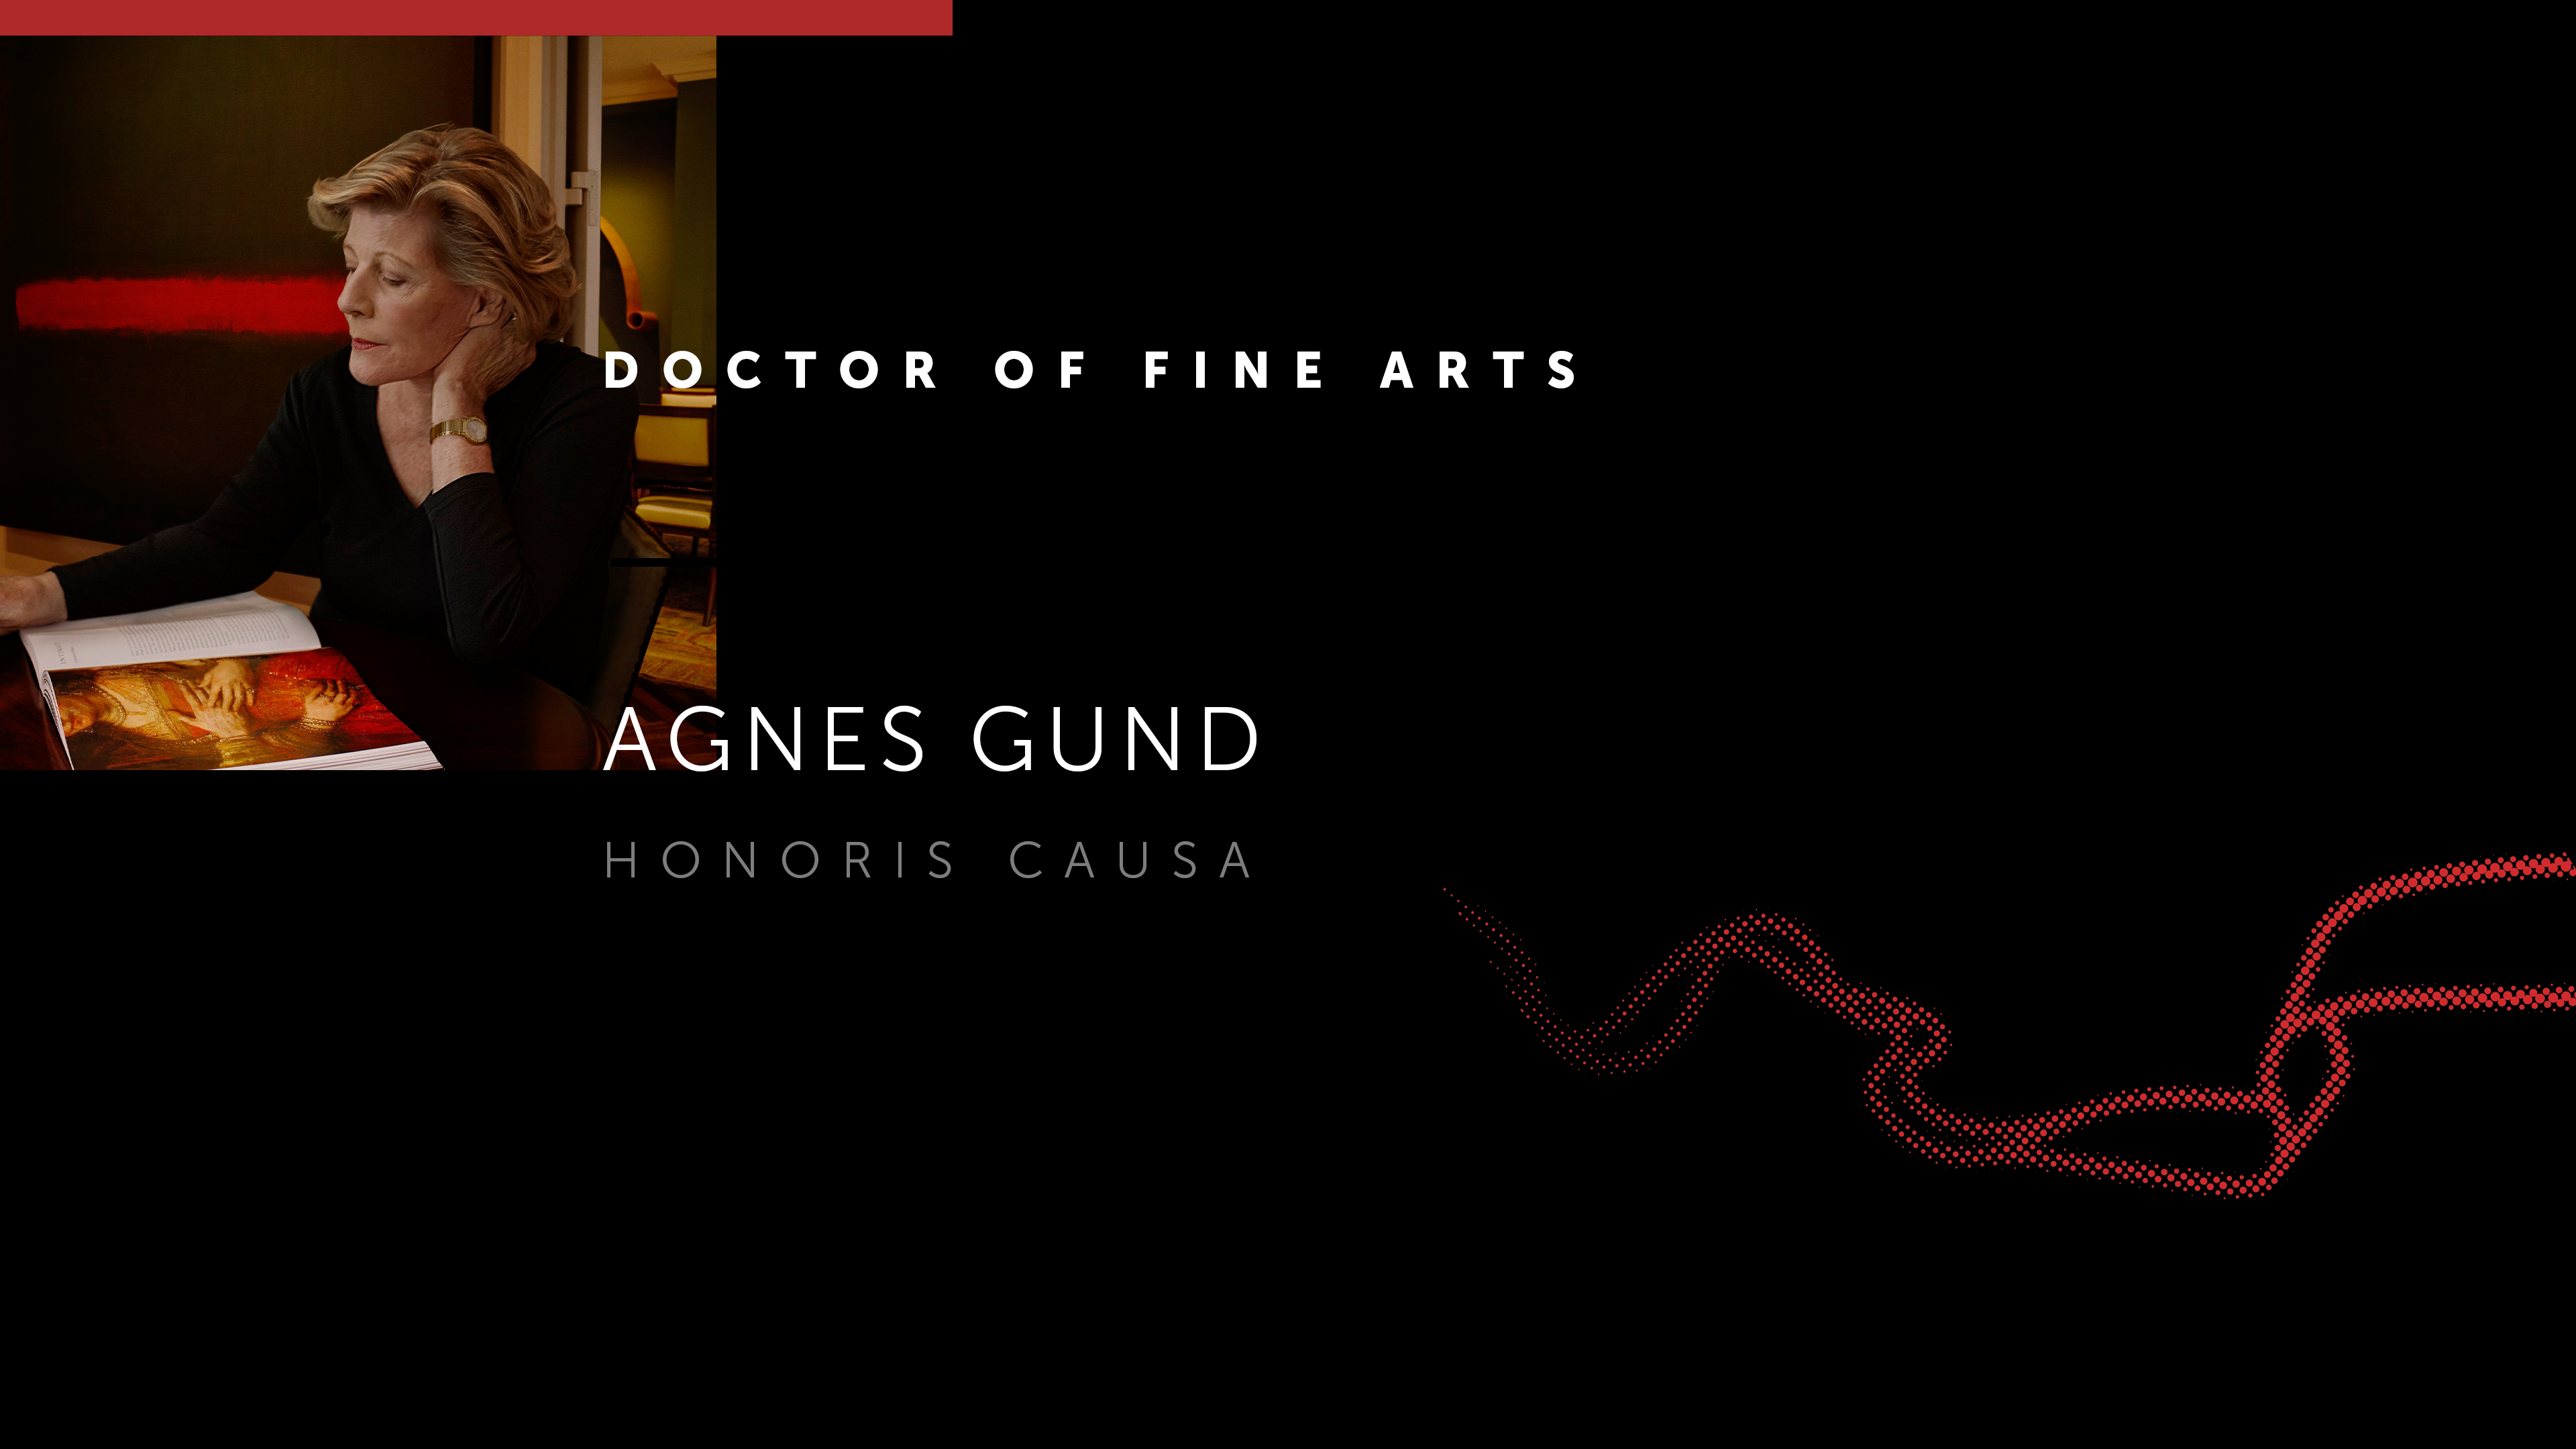 A black background and the text Doctor of Fine Arts Agnes Gund